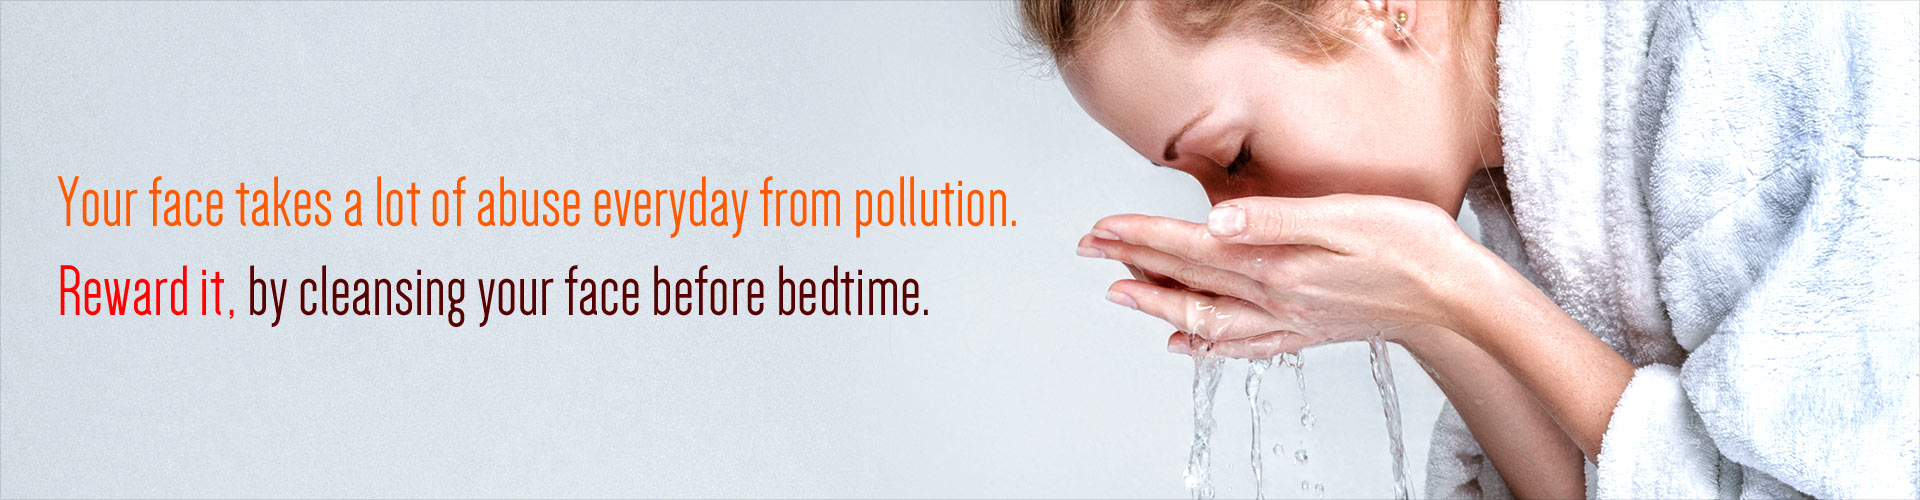 Your Face takes a lot of abuse everyday from pollution. Reward it, by cleansing your face before bedtime.